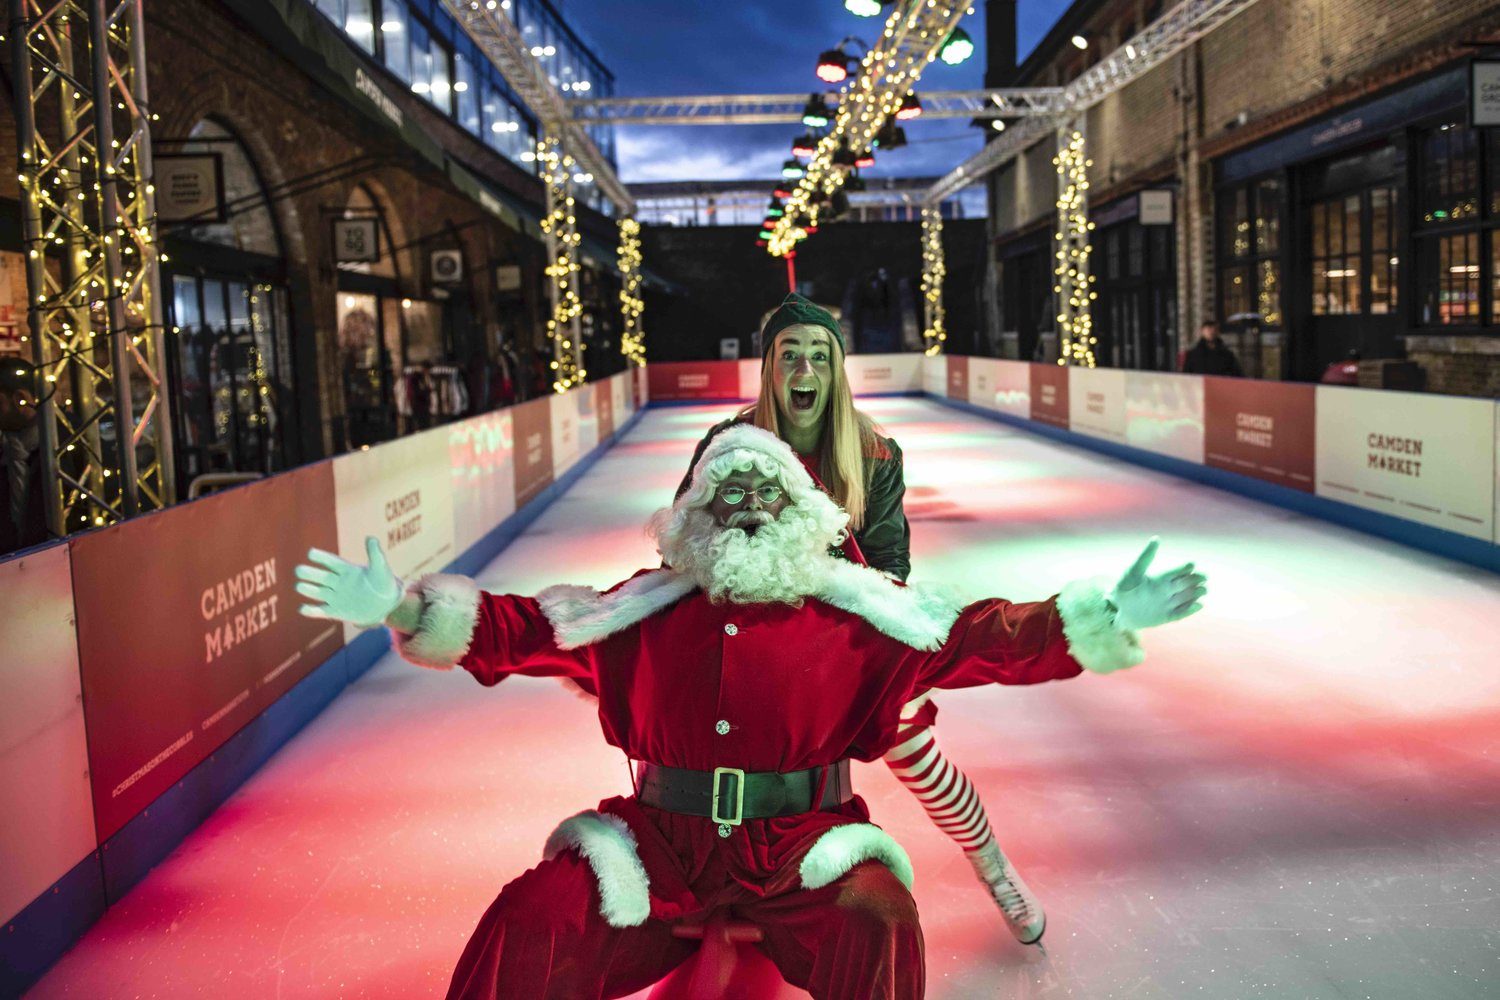 Hans Gretel Glide Into Camden Market With Uk Debut In Time For The Festive Season Aver